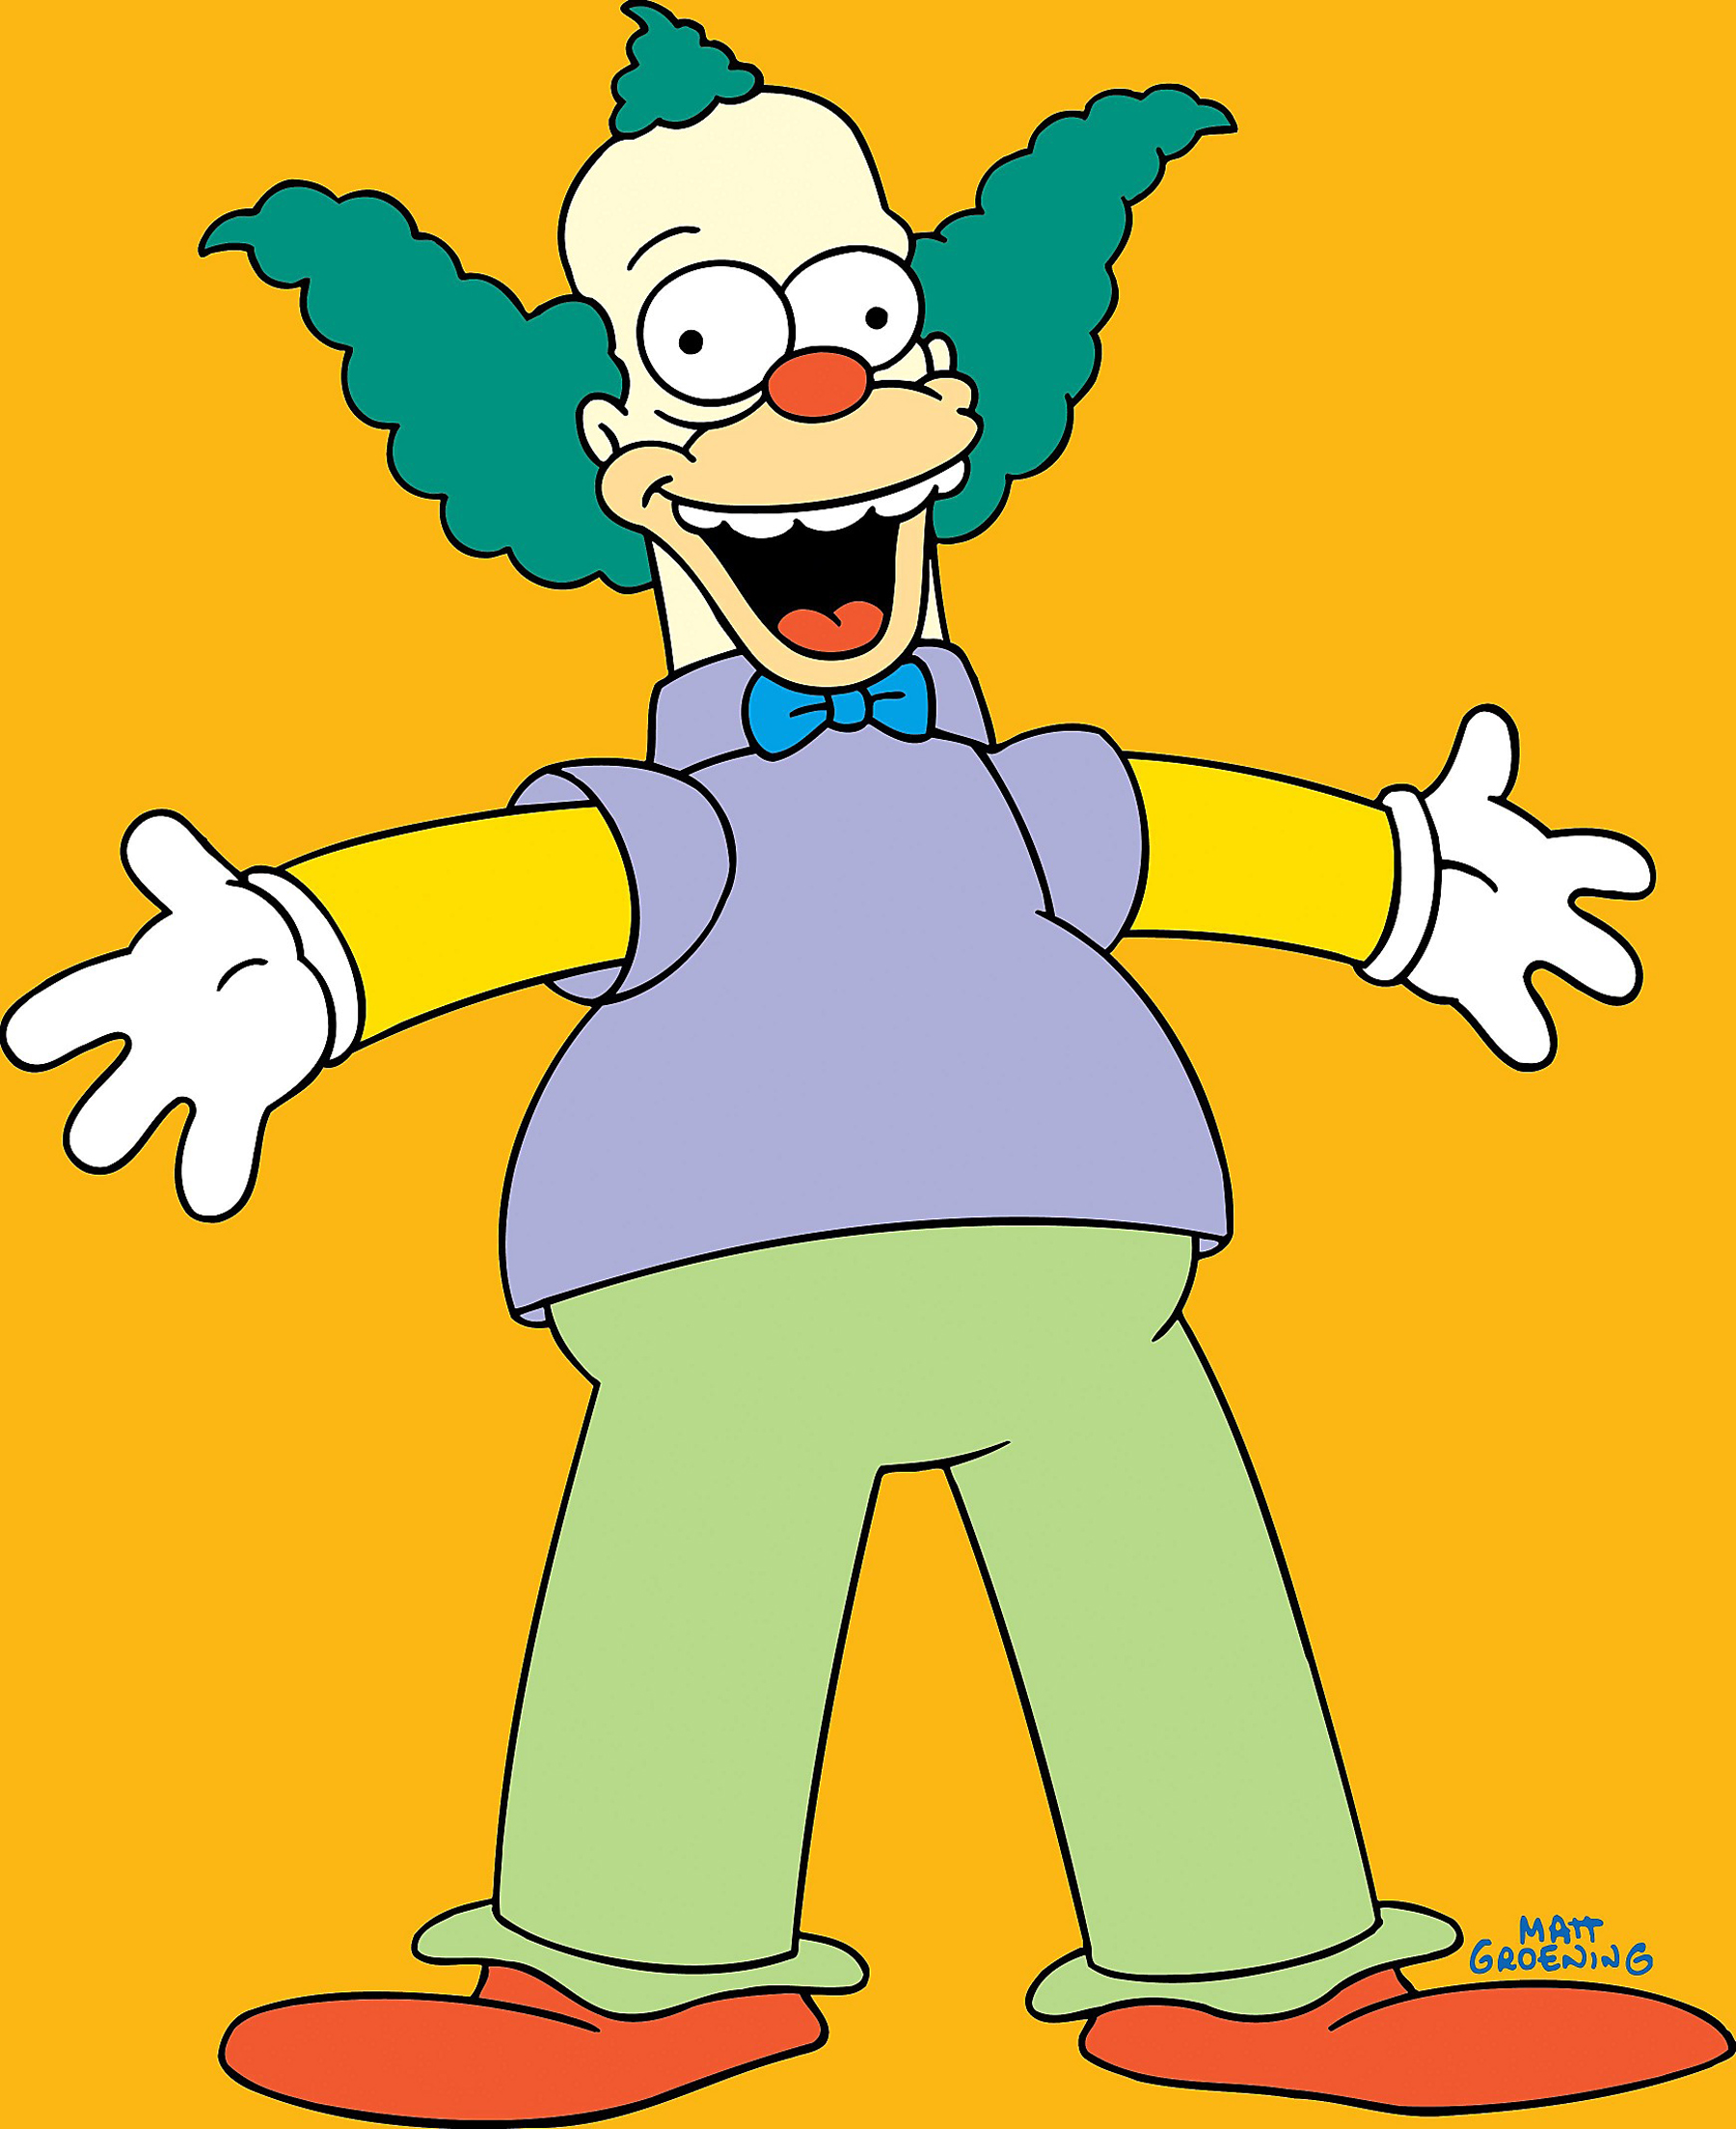 Save Me the Krust: 'The Simpsons' Likely Killing Off Krusty the Clown